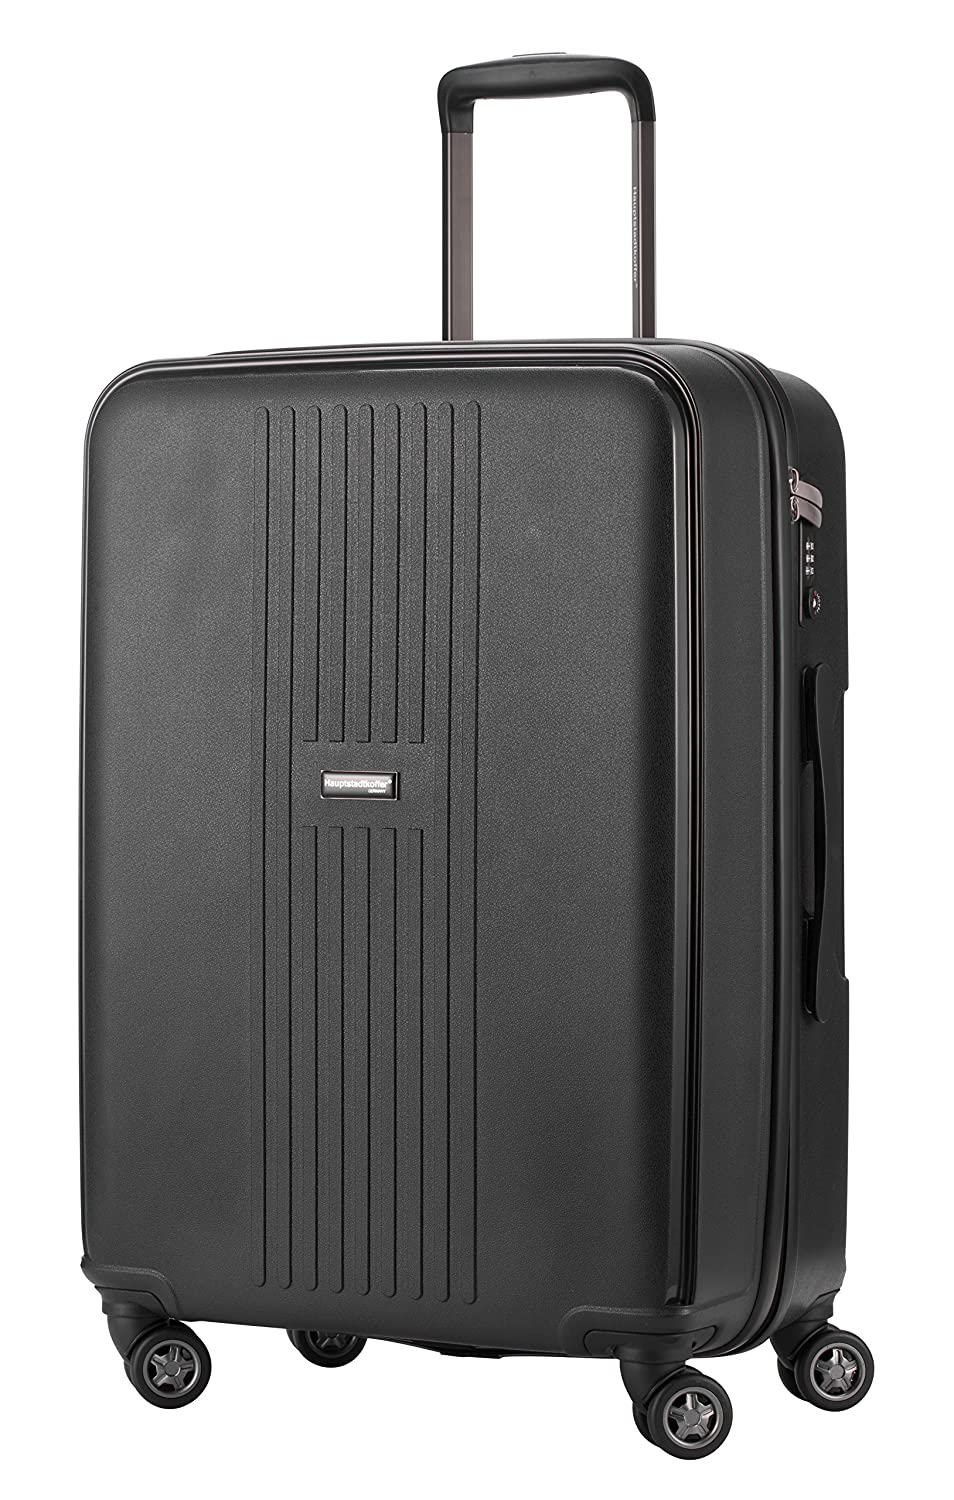 1132d2e7ba22 HAUPTSTADTKOFFER - F-Hain - Luggage Suitcase Hardside Spinner Trolley  Expandable 24¡° TSA, Black